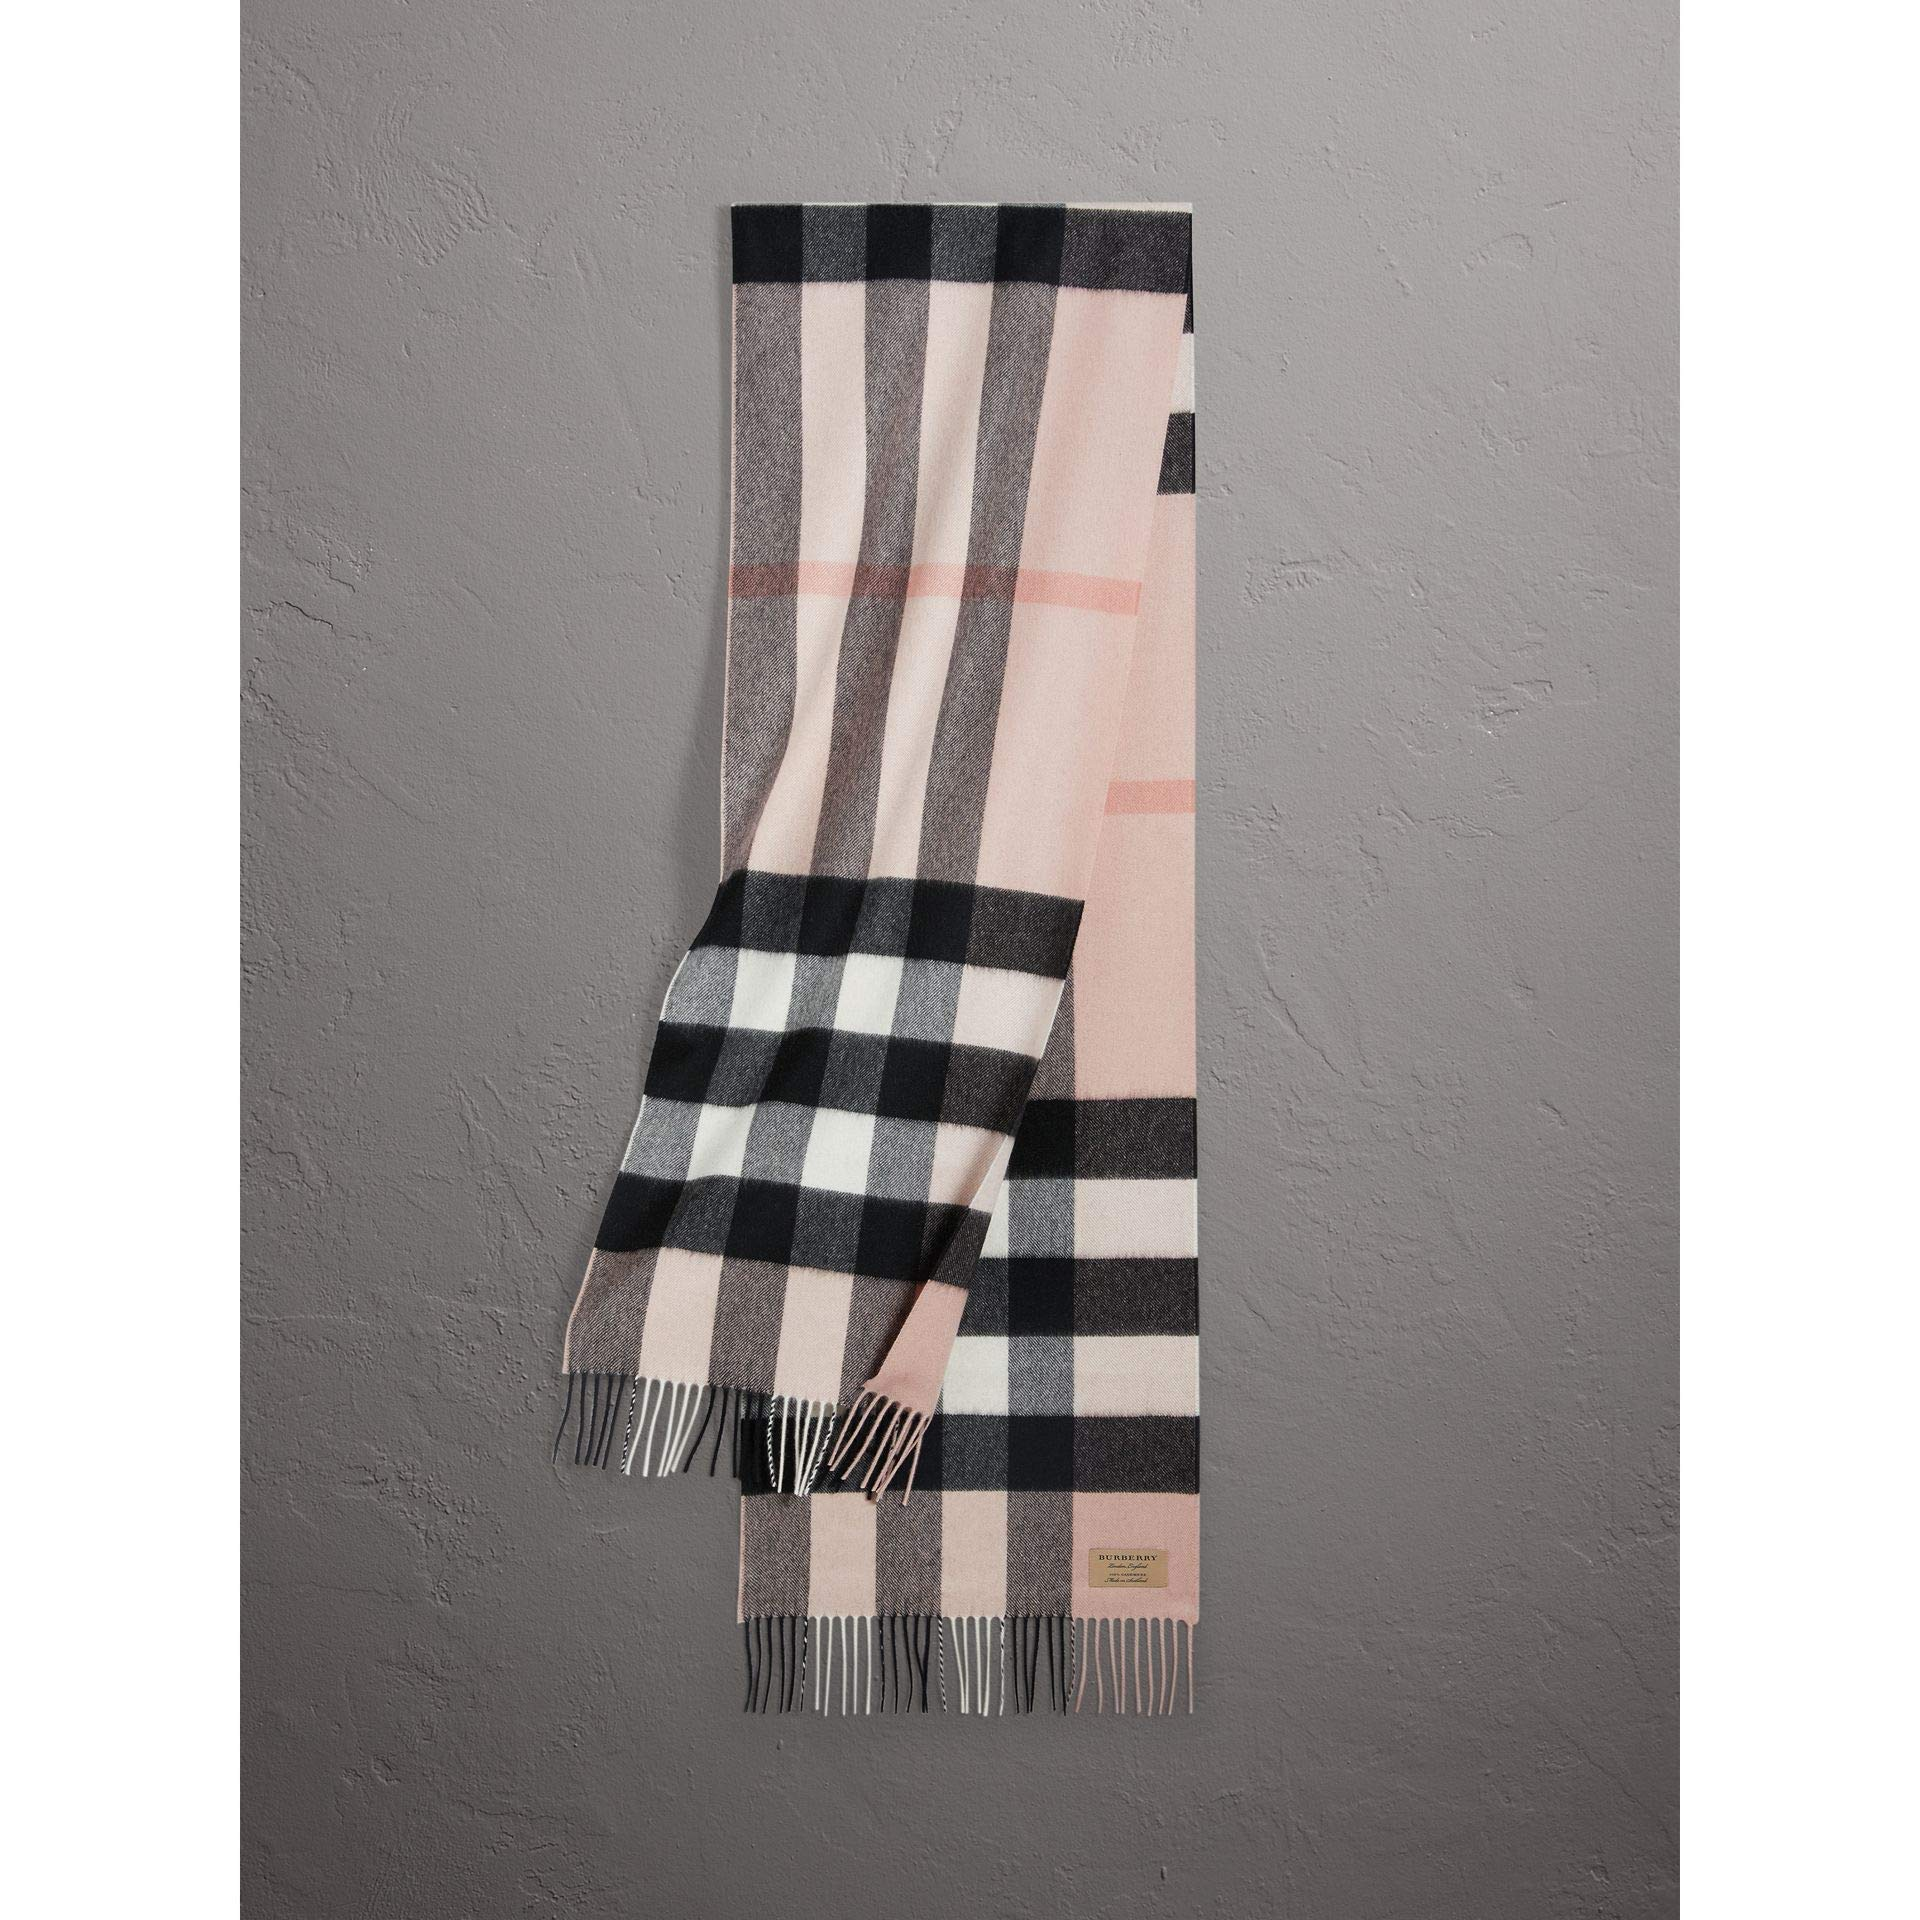 Burberry Women's Large Classic Cashmere Scarf Ash Rose